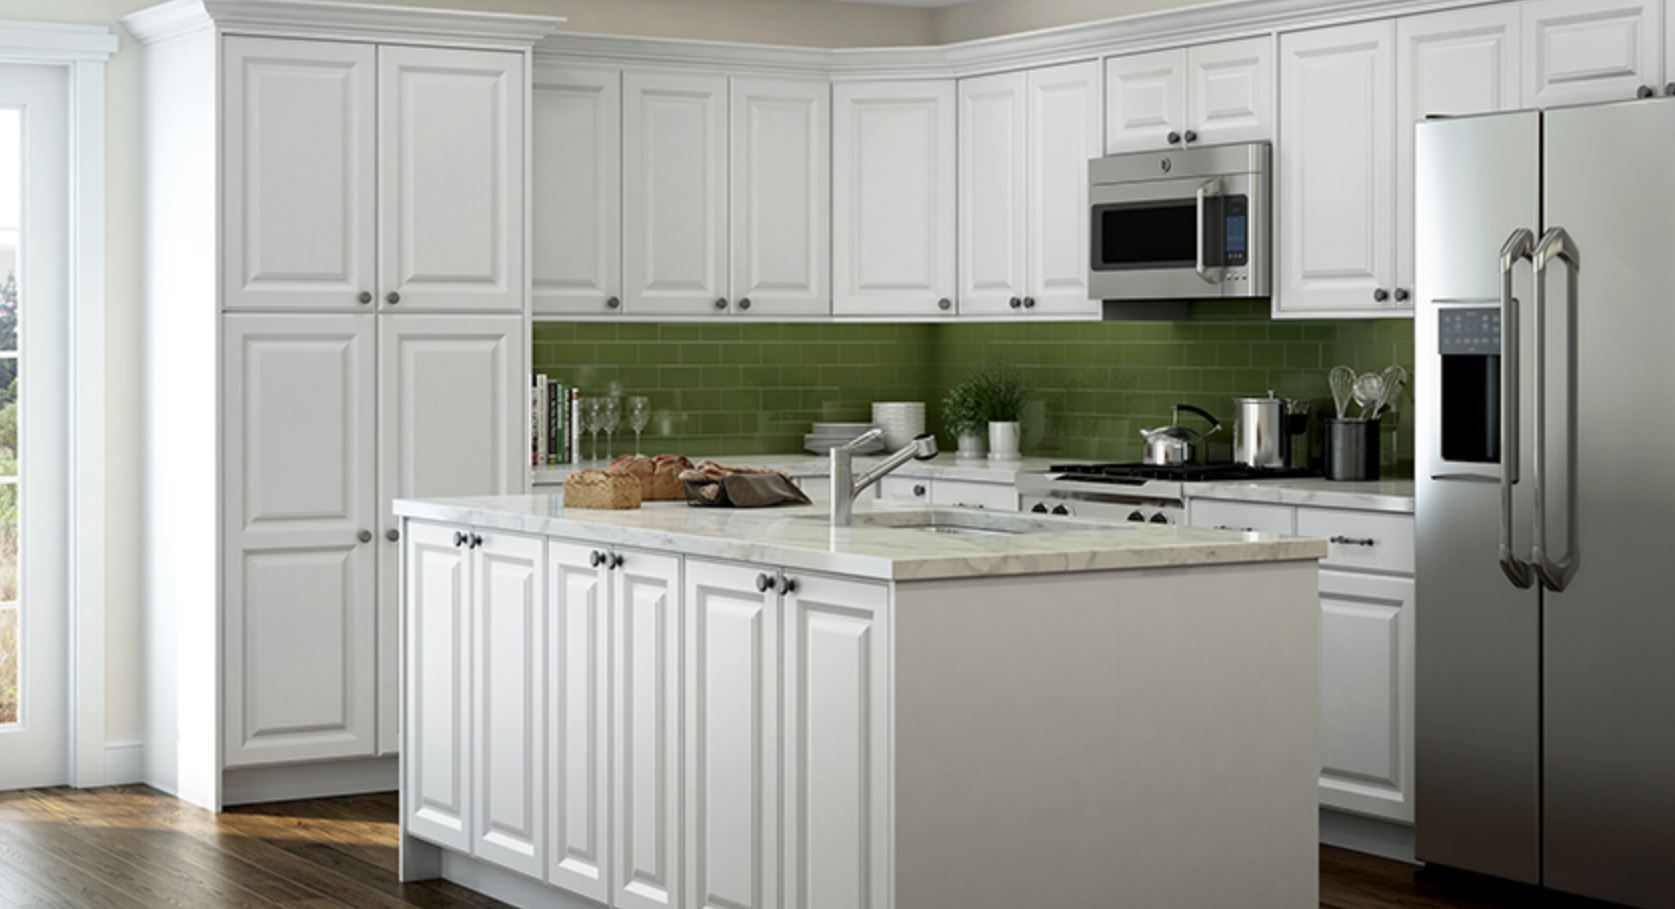 Anzio Cabinet Accessories In Polar White Kitchen The